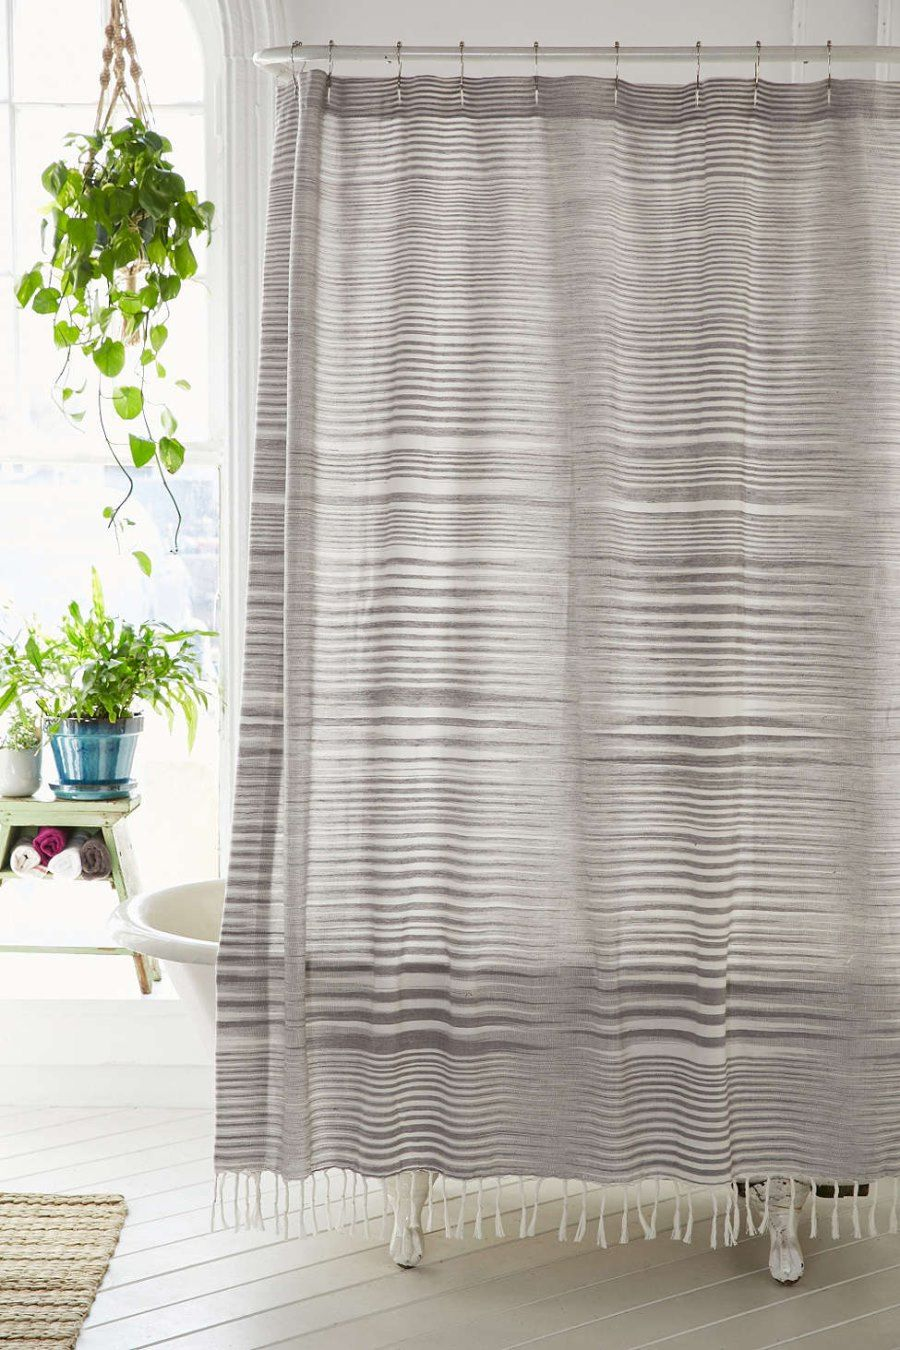 decor rods designer best inside curtains hotel shower sofa modern interior quality curtain home rod breathtaking your